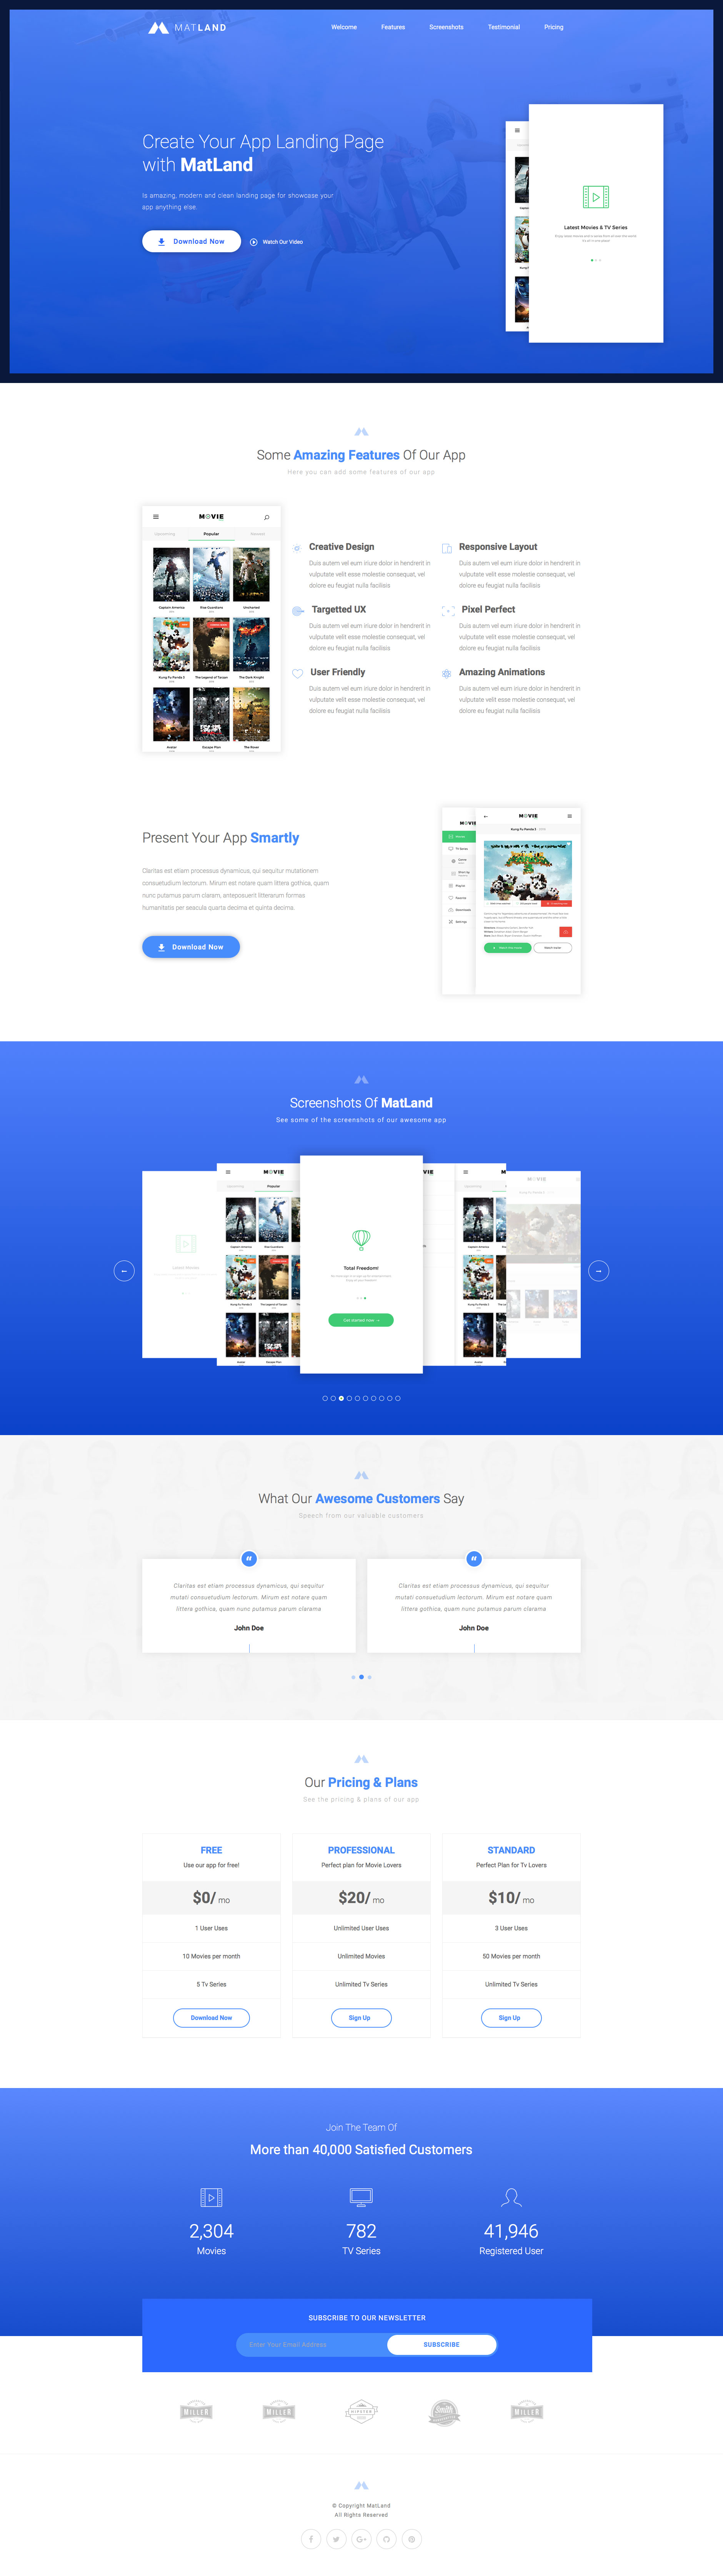 MatLand is a beautiful and clean responsive HTML5 website App Landing page. It comes with 7 variations included different colors. MatLand app Landing page template is built on the popular Bootstrap 3 framework.